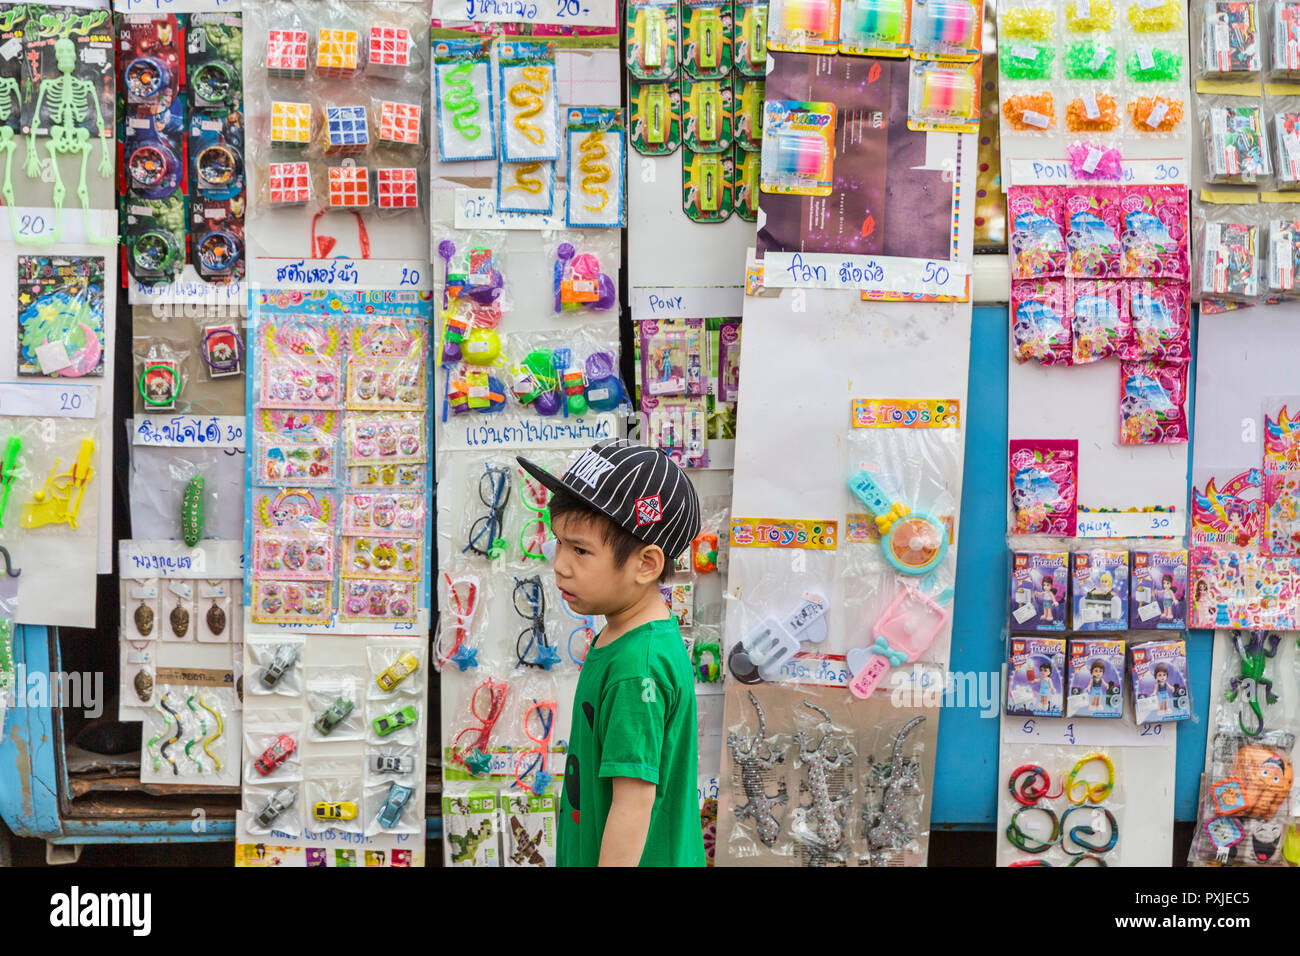 Boy looks at toys for sale at converted VW van pop up toy shop at JingJai Farmer's Market, Chiang Mai, Thailand - Stock Image